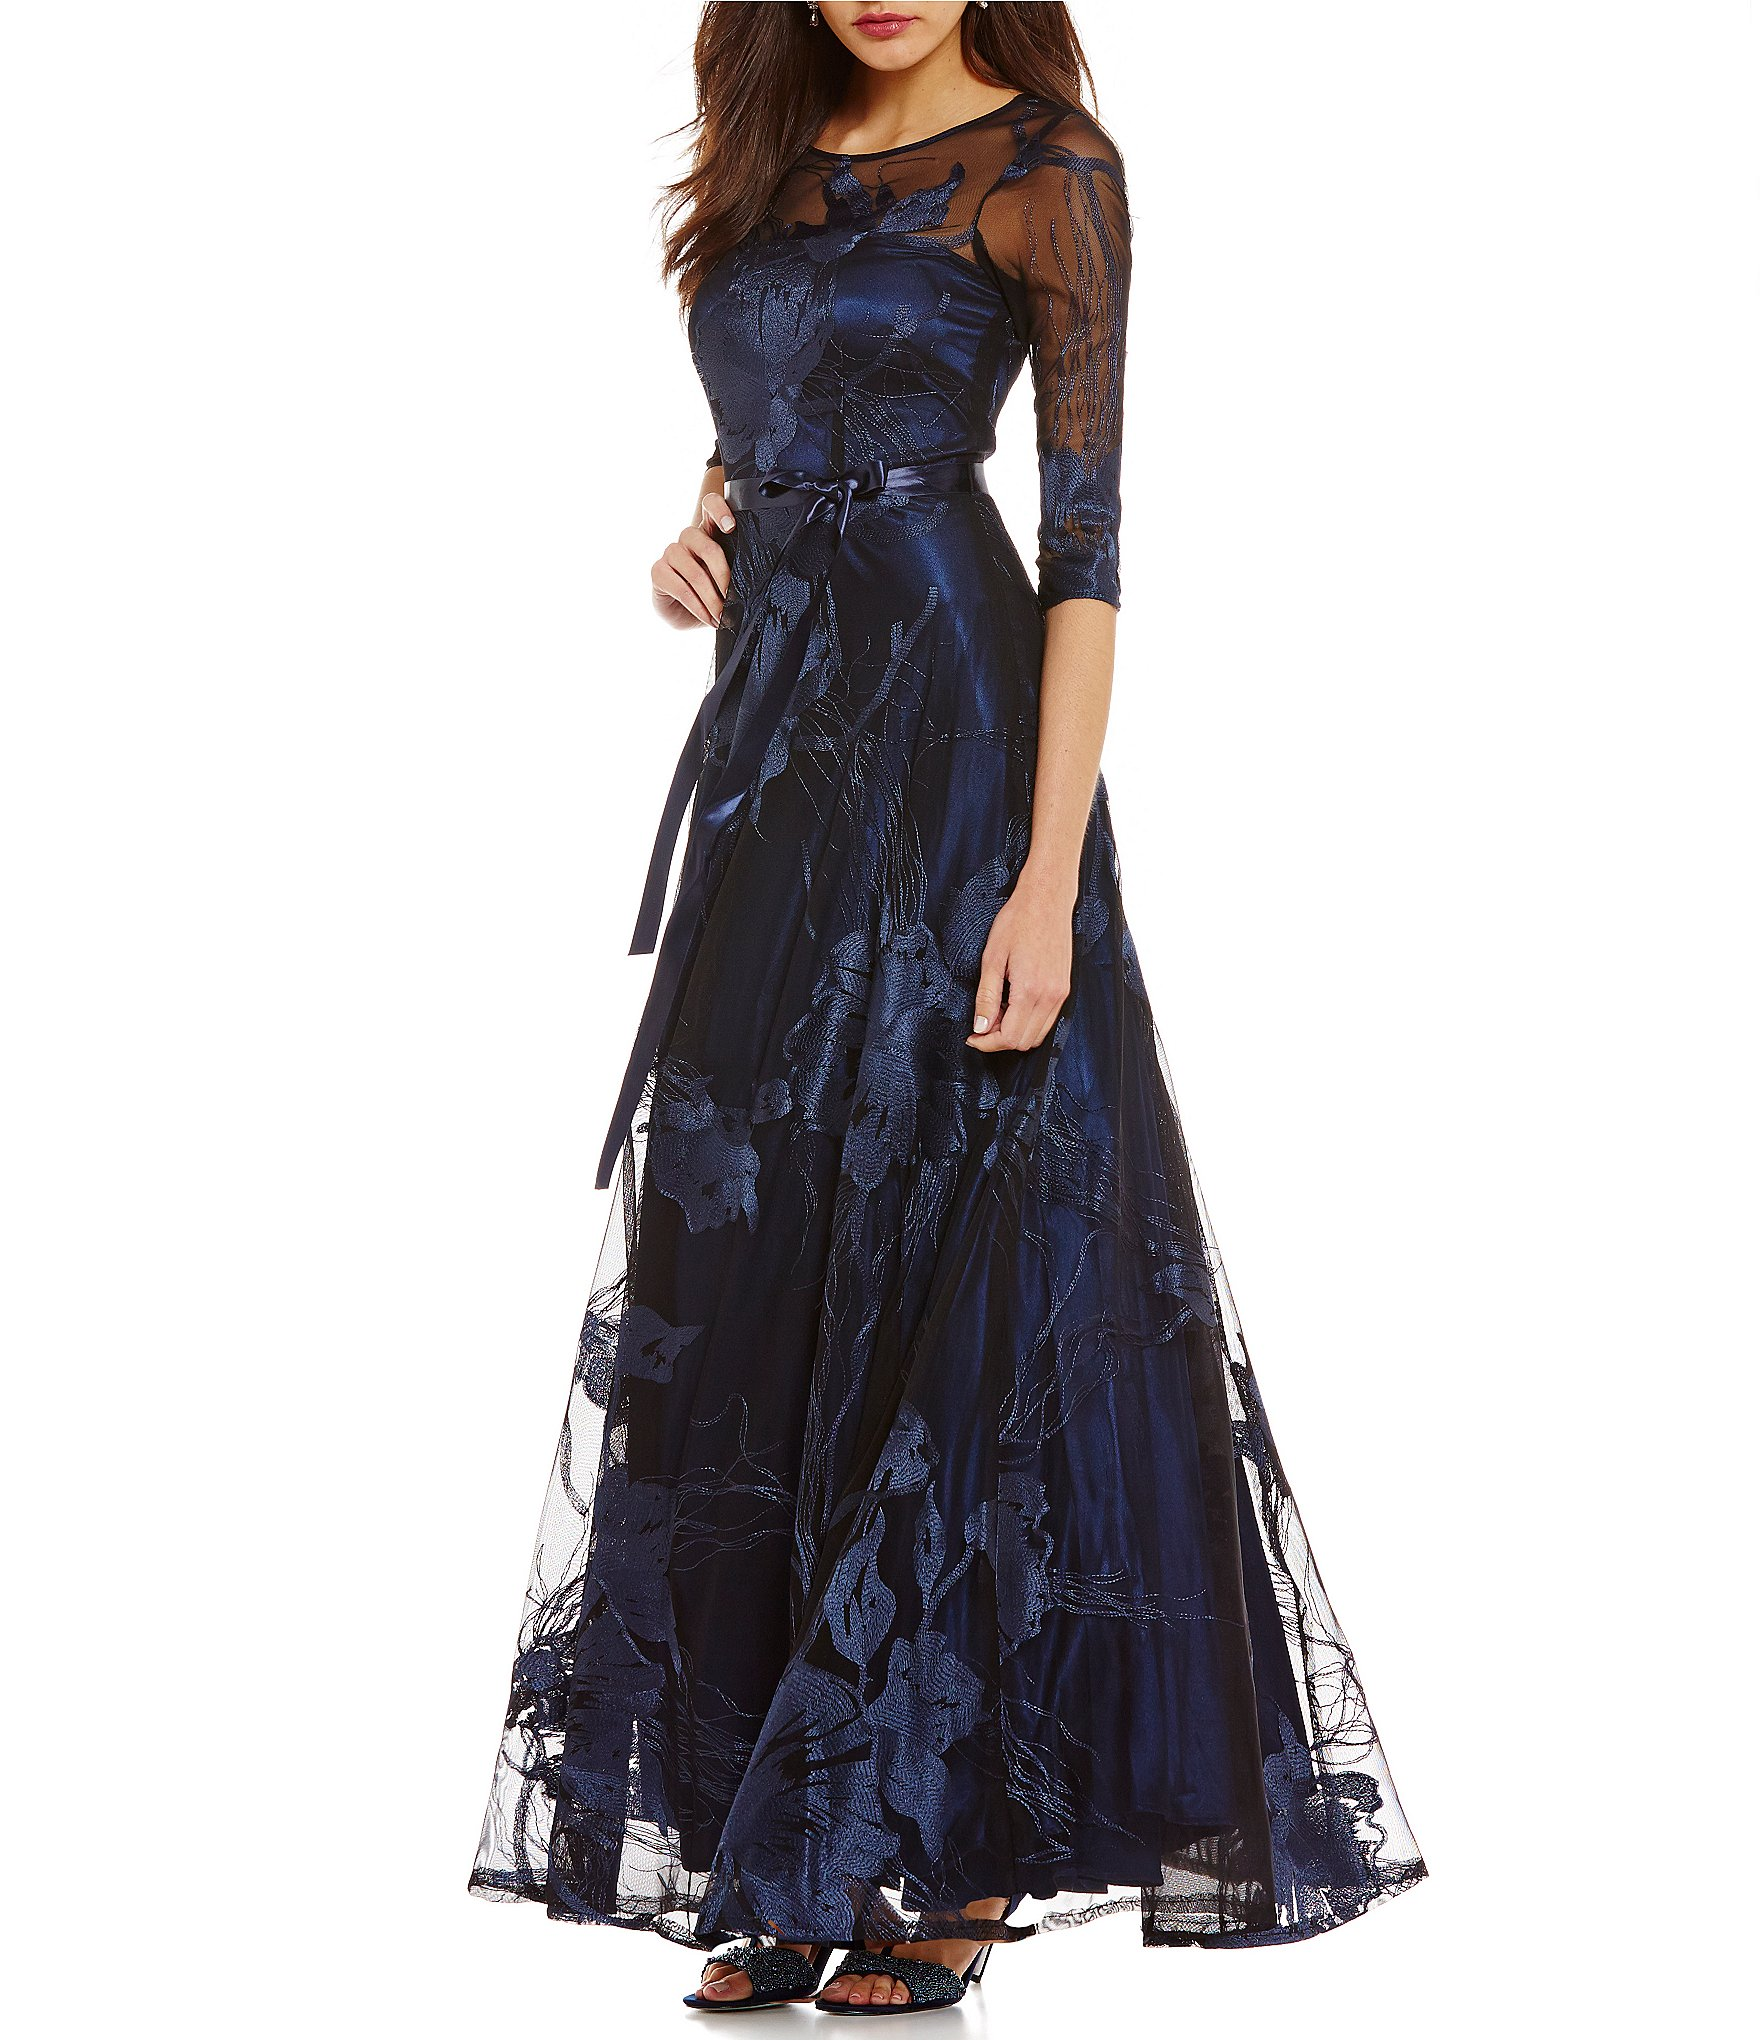 Outstanding Dillards Ball Gowns Photos - Wedding and flowers ...